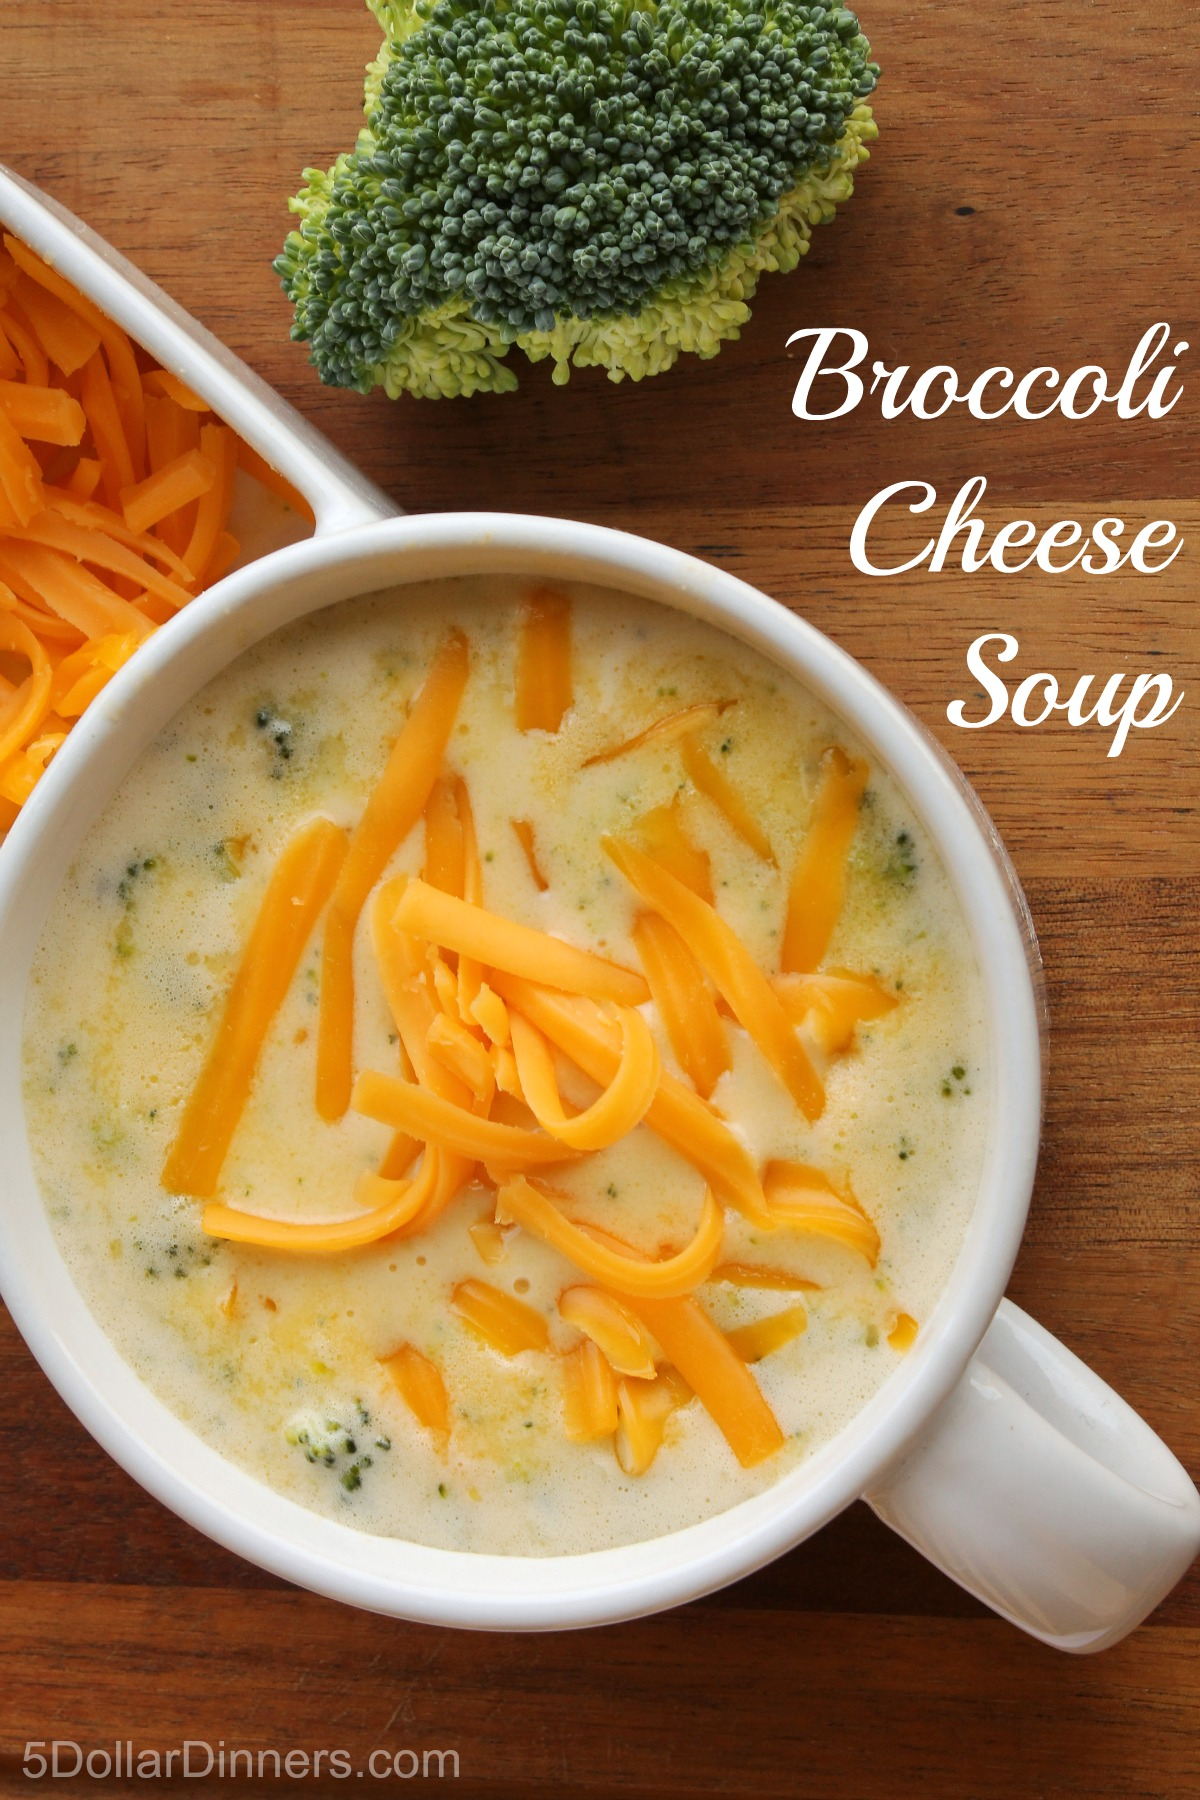 Broccoli Cheese Soup from 5DollarDinners.com